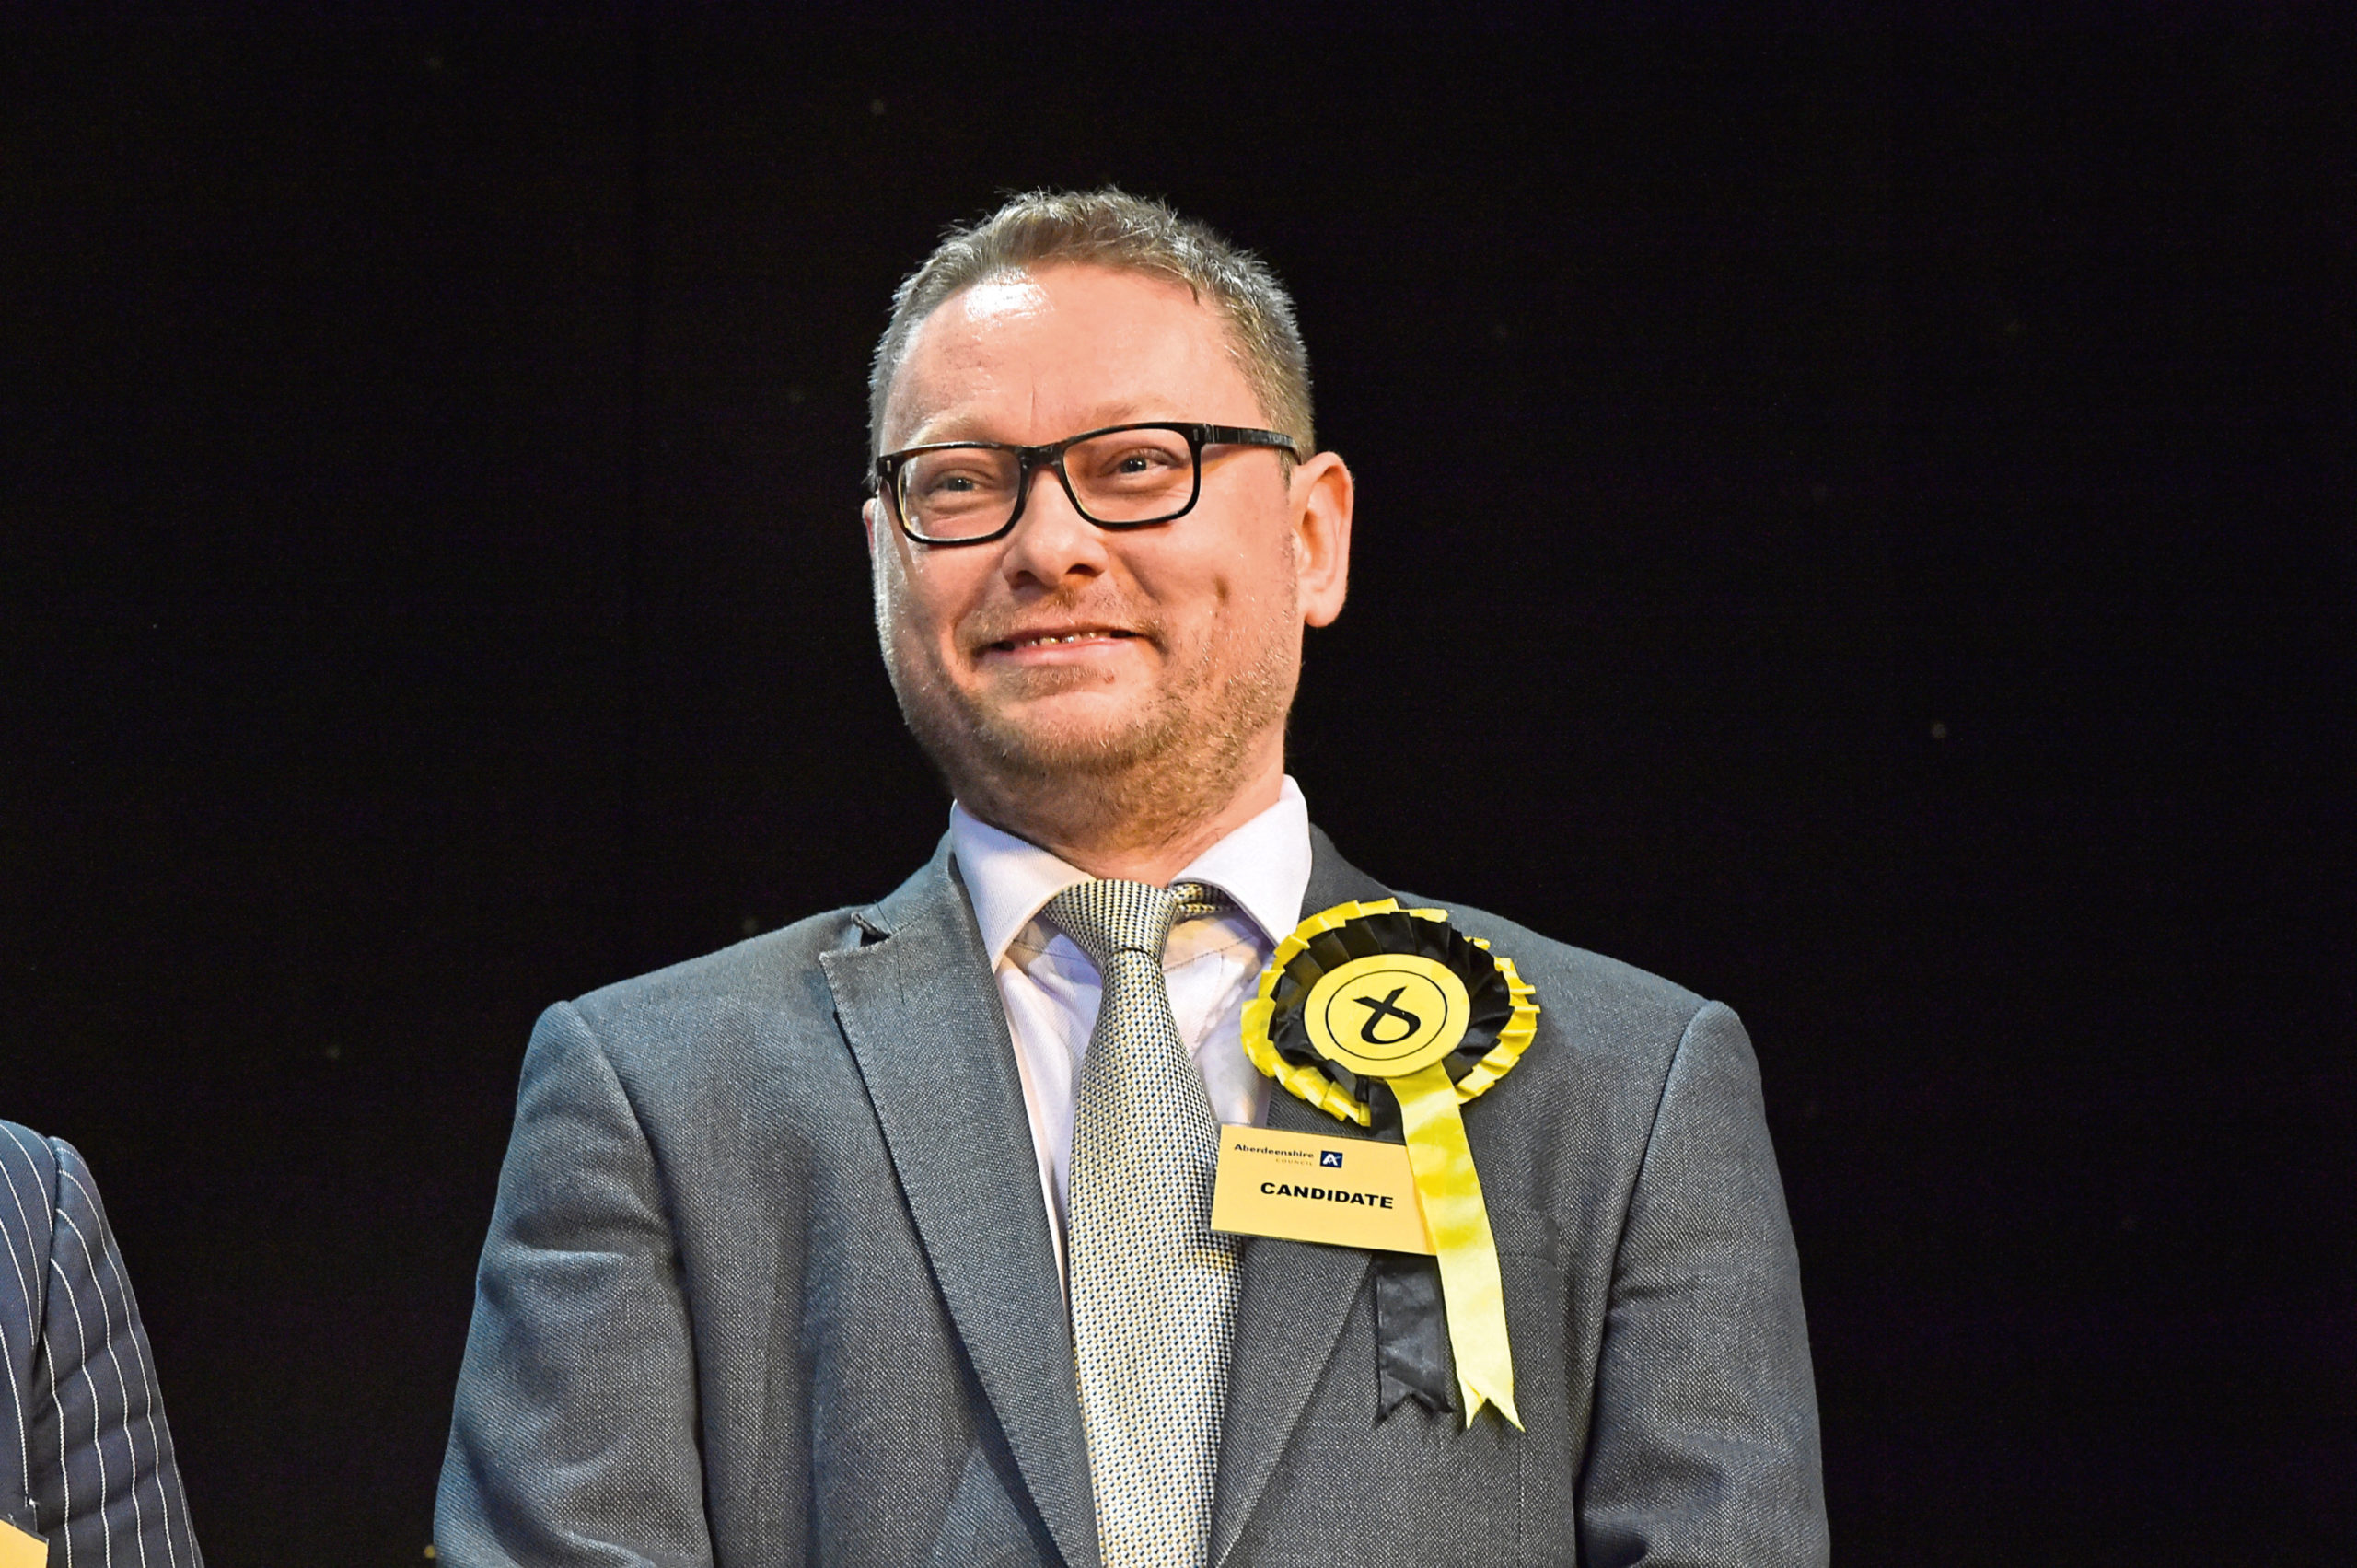 The by-election was triggered when former Councillor Richard Thomson, now MP for Gordon, stepped down